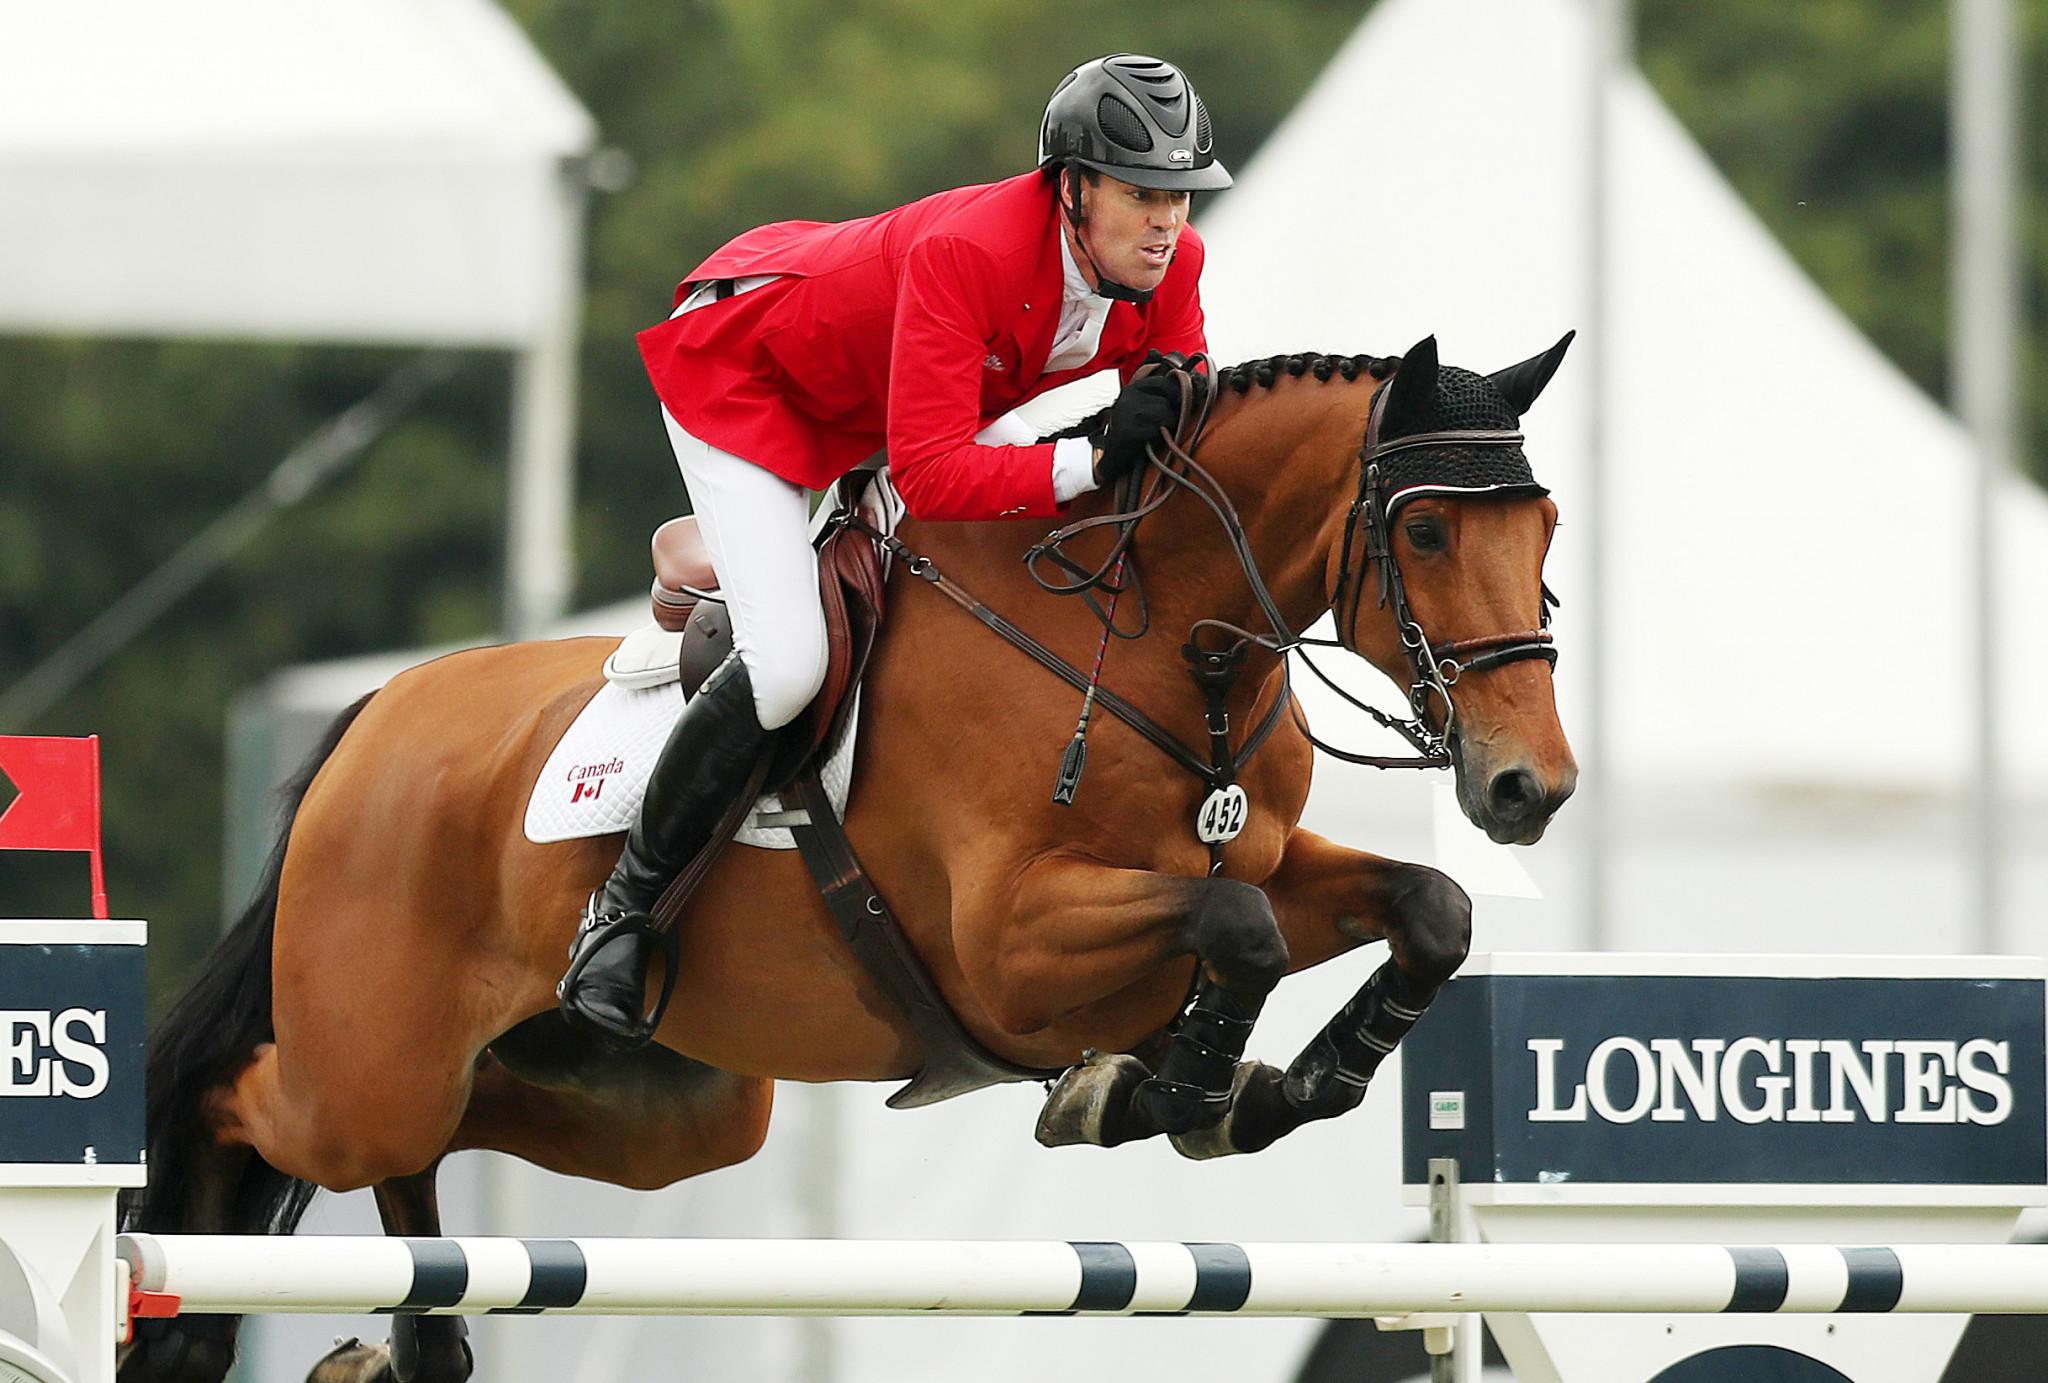 Excellent performance from Millar helps Canada claim gold at FEI Jumping Nations Cup of Mexico